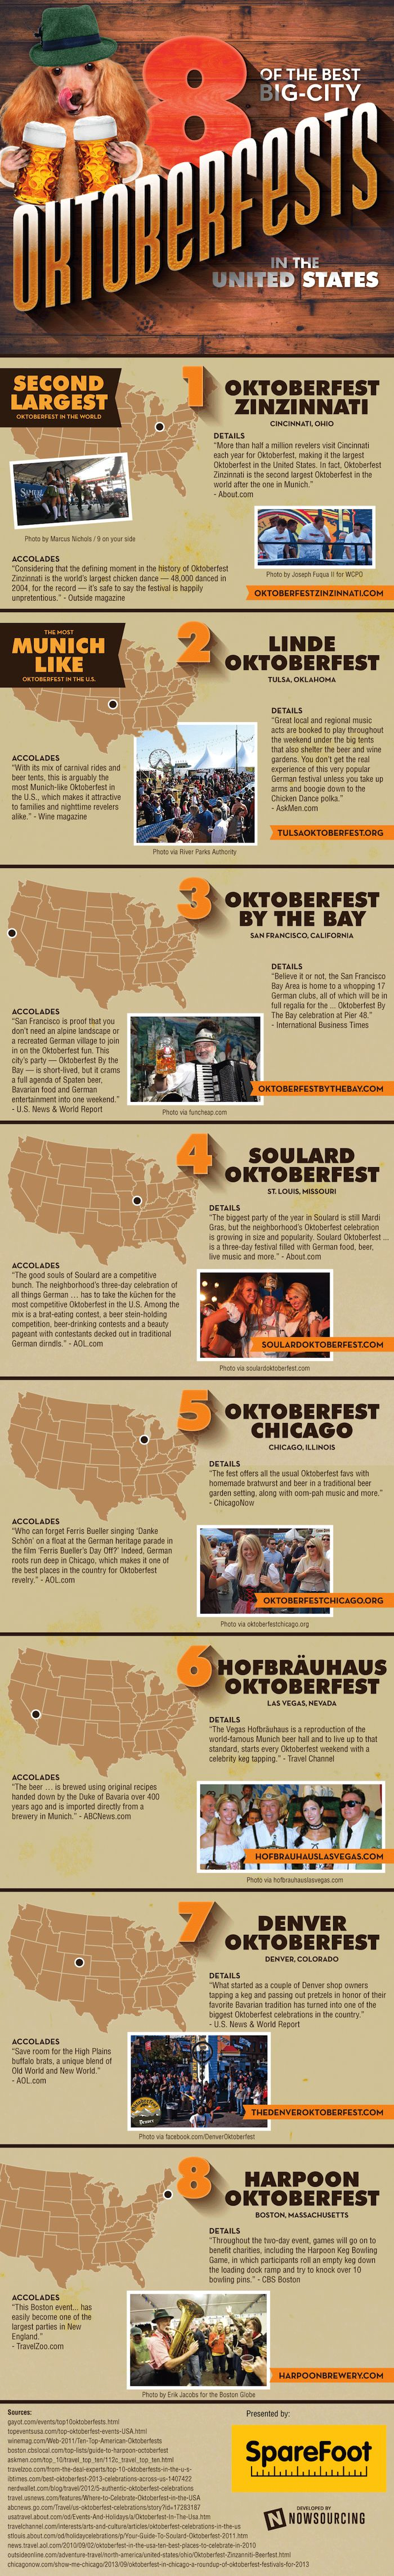 While the real Oktoberfest in Munich, Germany may be over, there are still plenty of fall celebrations that spotlight German heritage with oompah music, bratwurst and plenty of beer here in the Uni...